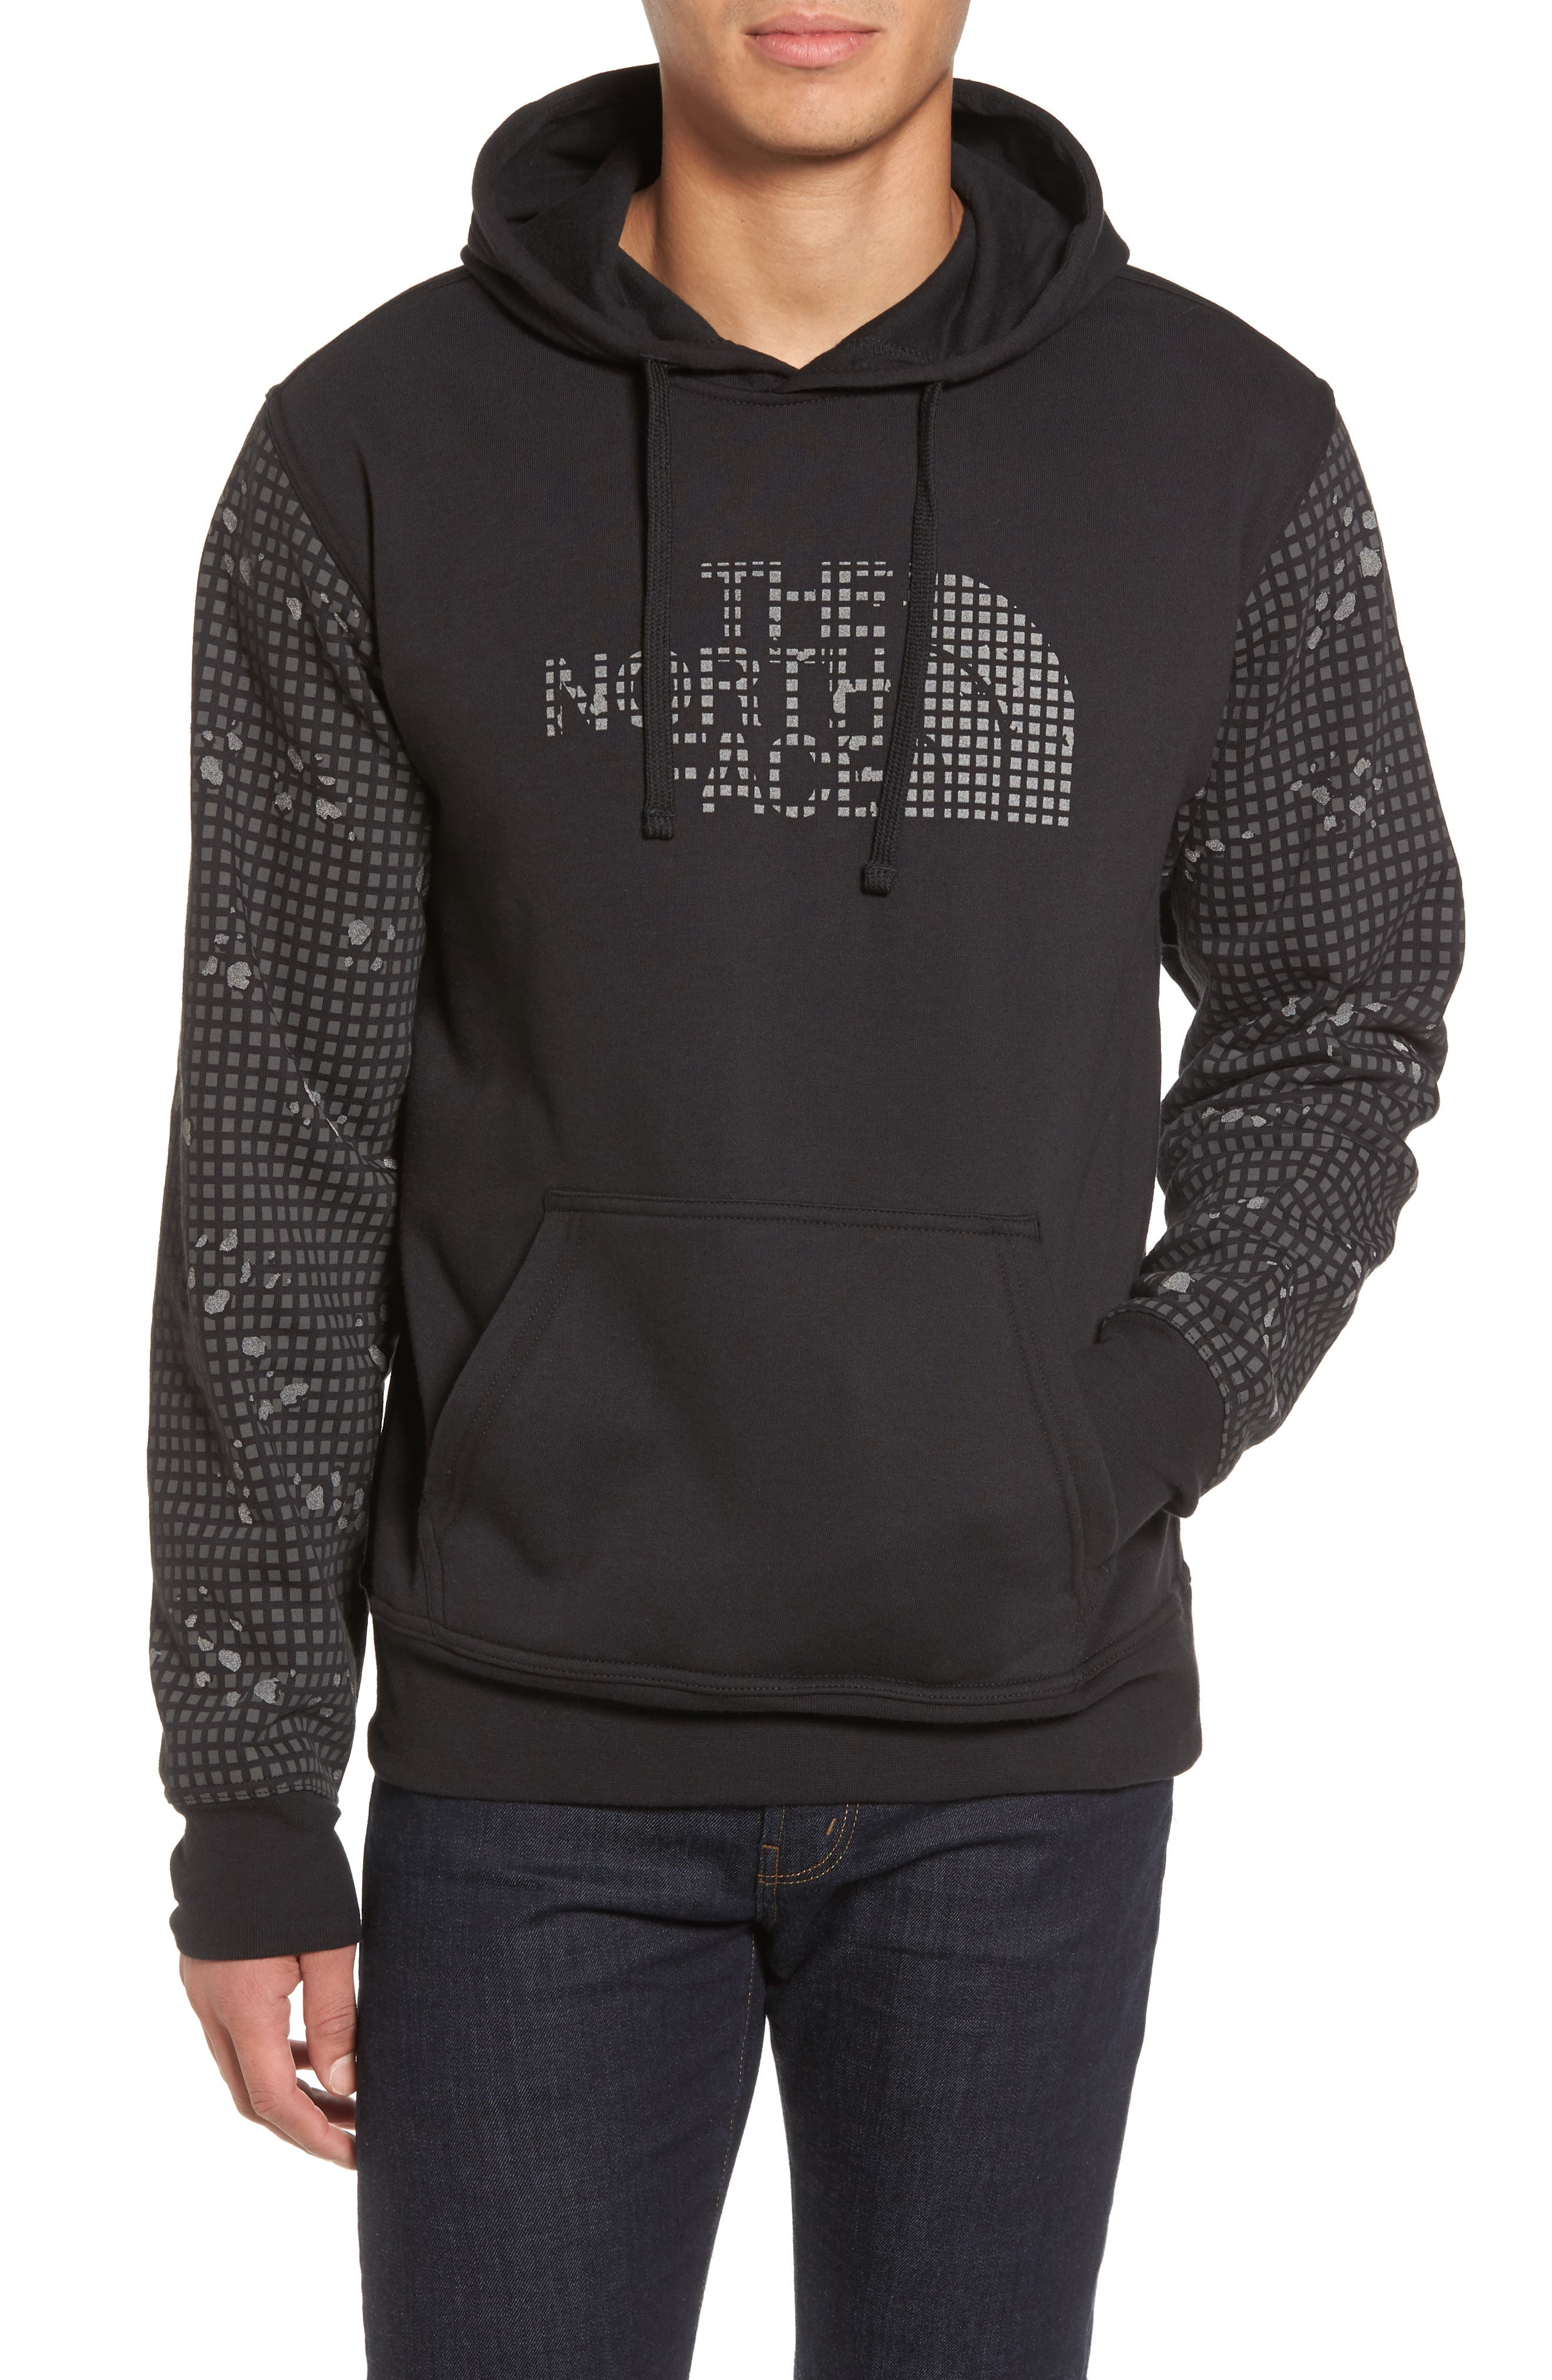 The North Face: Outerwear, Clothing & Accessories | Nordstrom